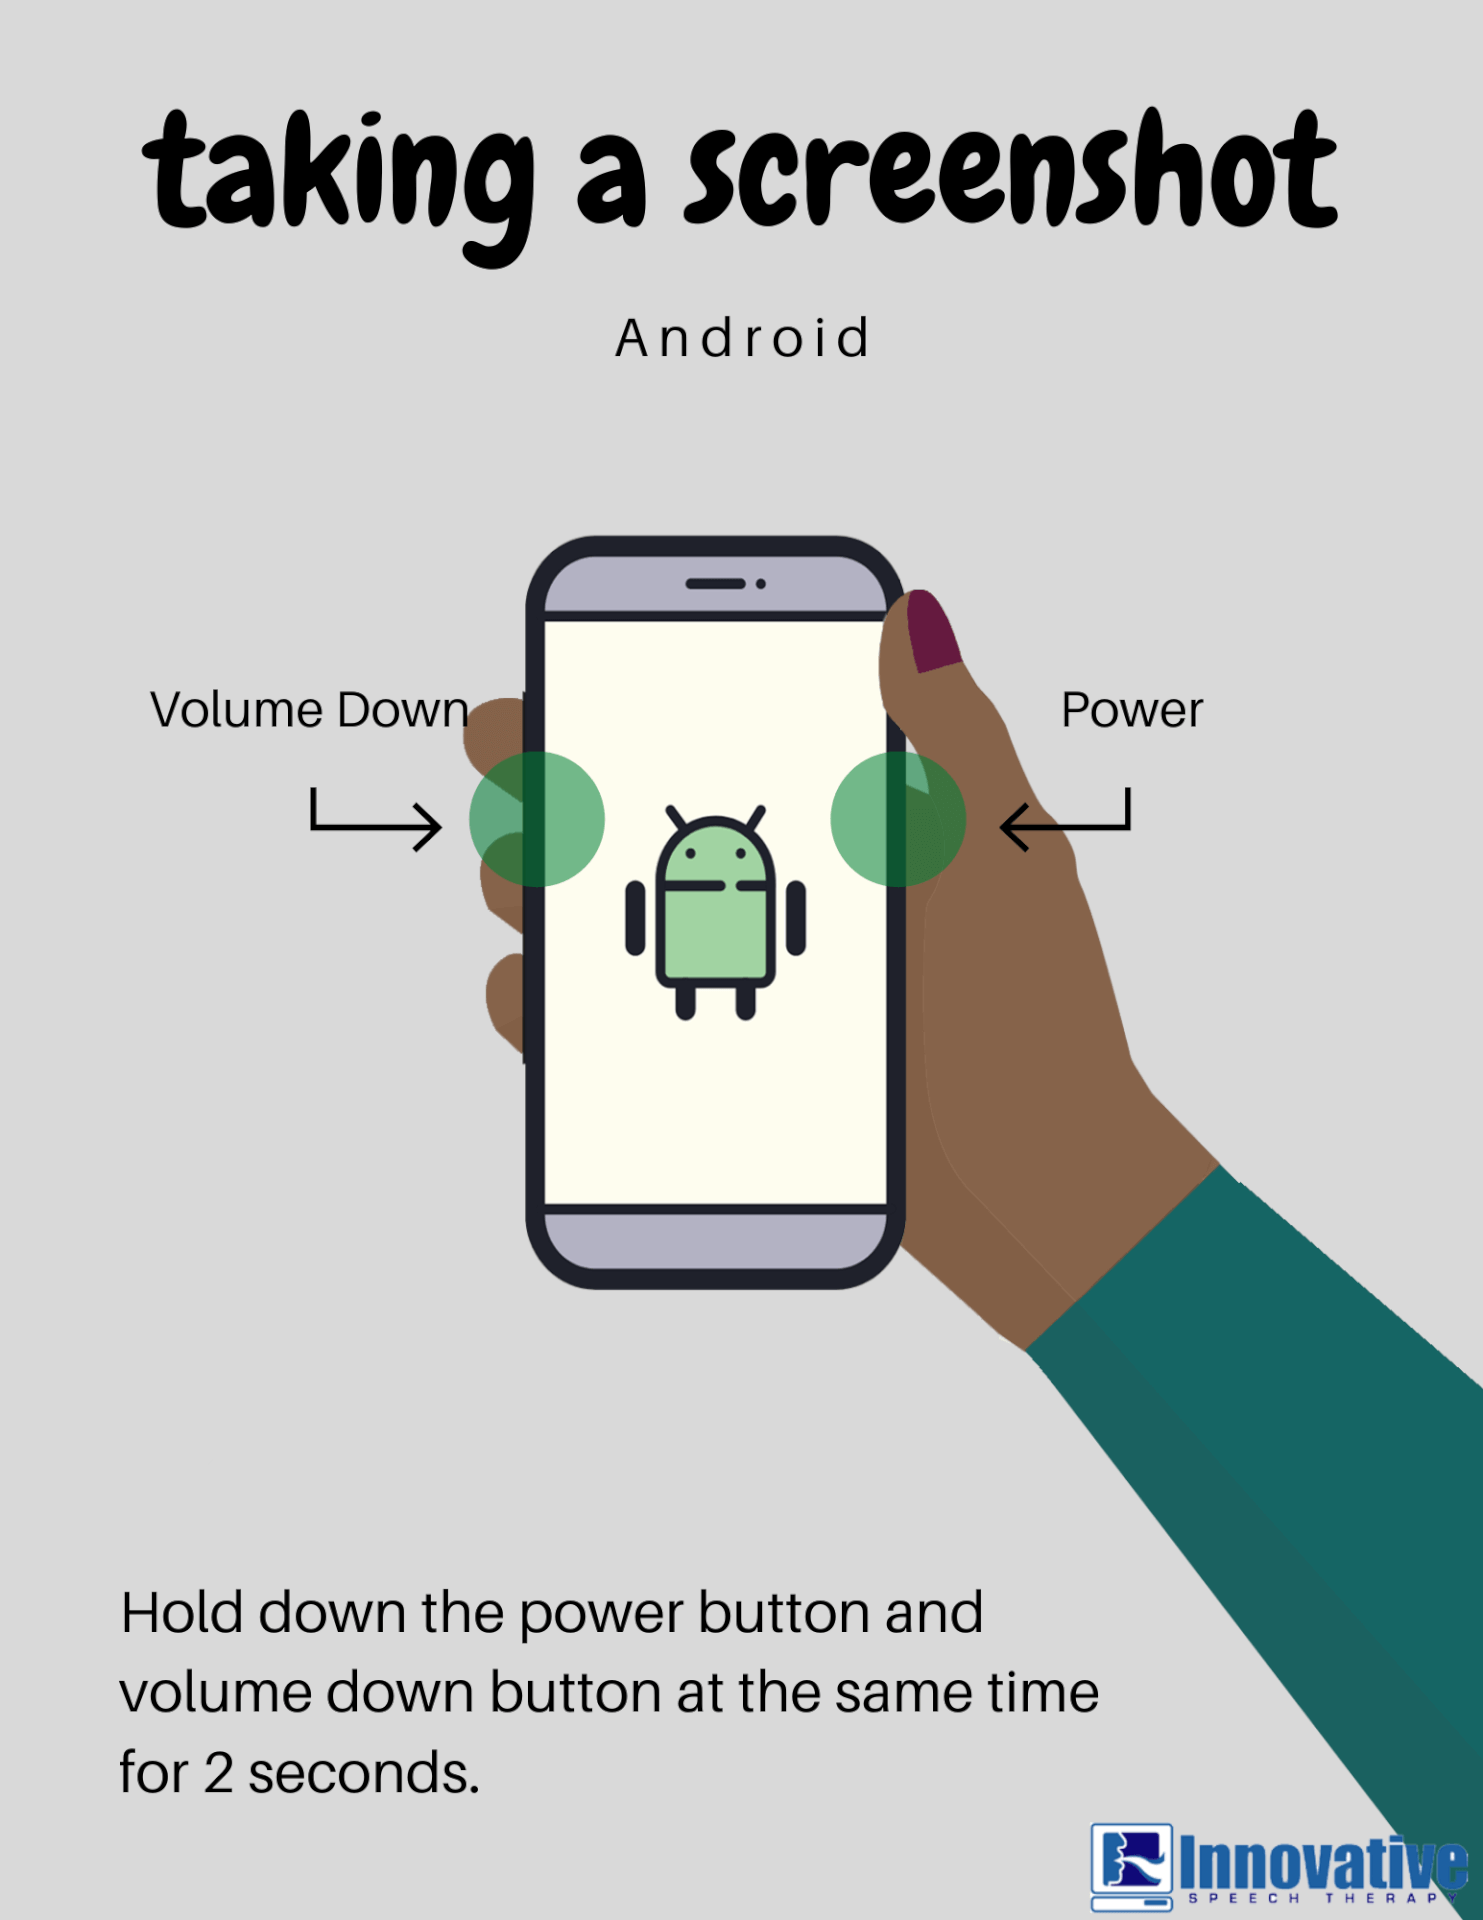 Graphic depicting a hand taking a screenshot on an Android phone. Image text: Taking a screenshot: Android. Hold down the power button and volume button at the same time for 2 seconds.